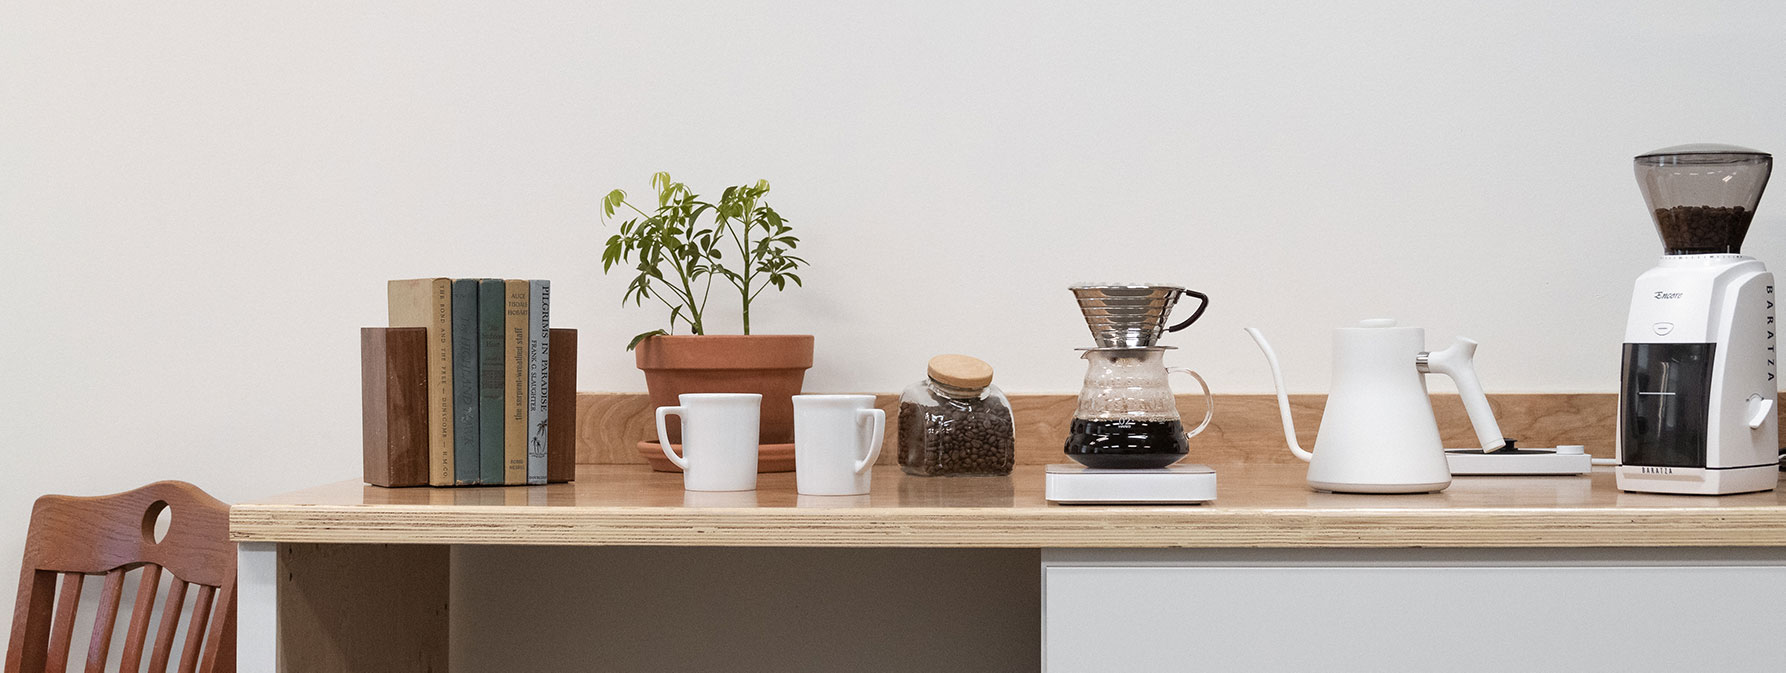 Brewing Coffee at Home